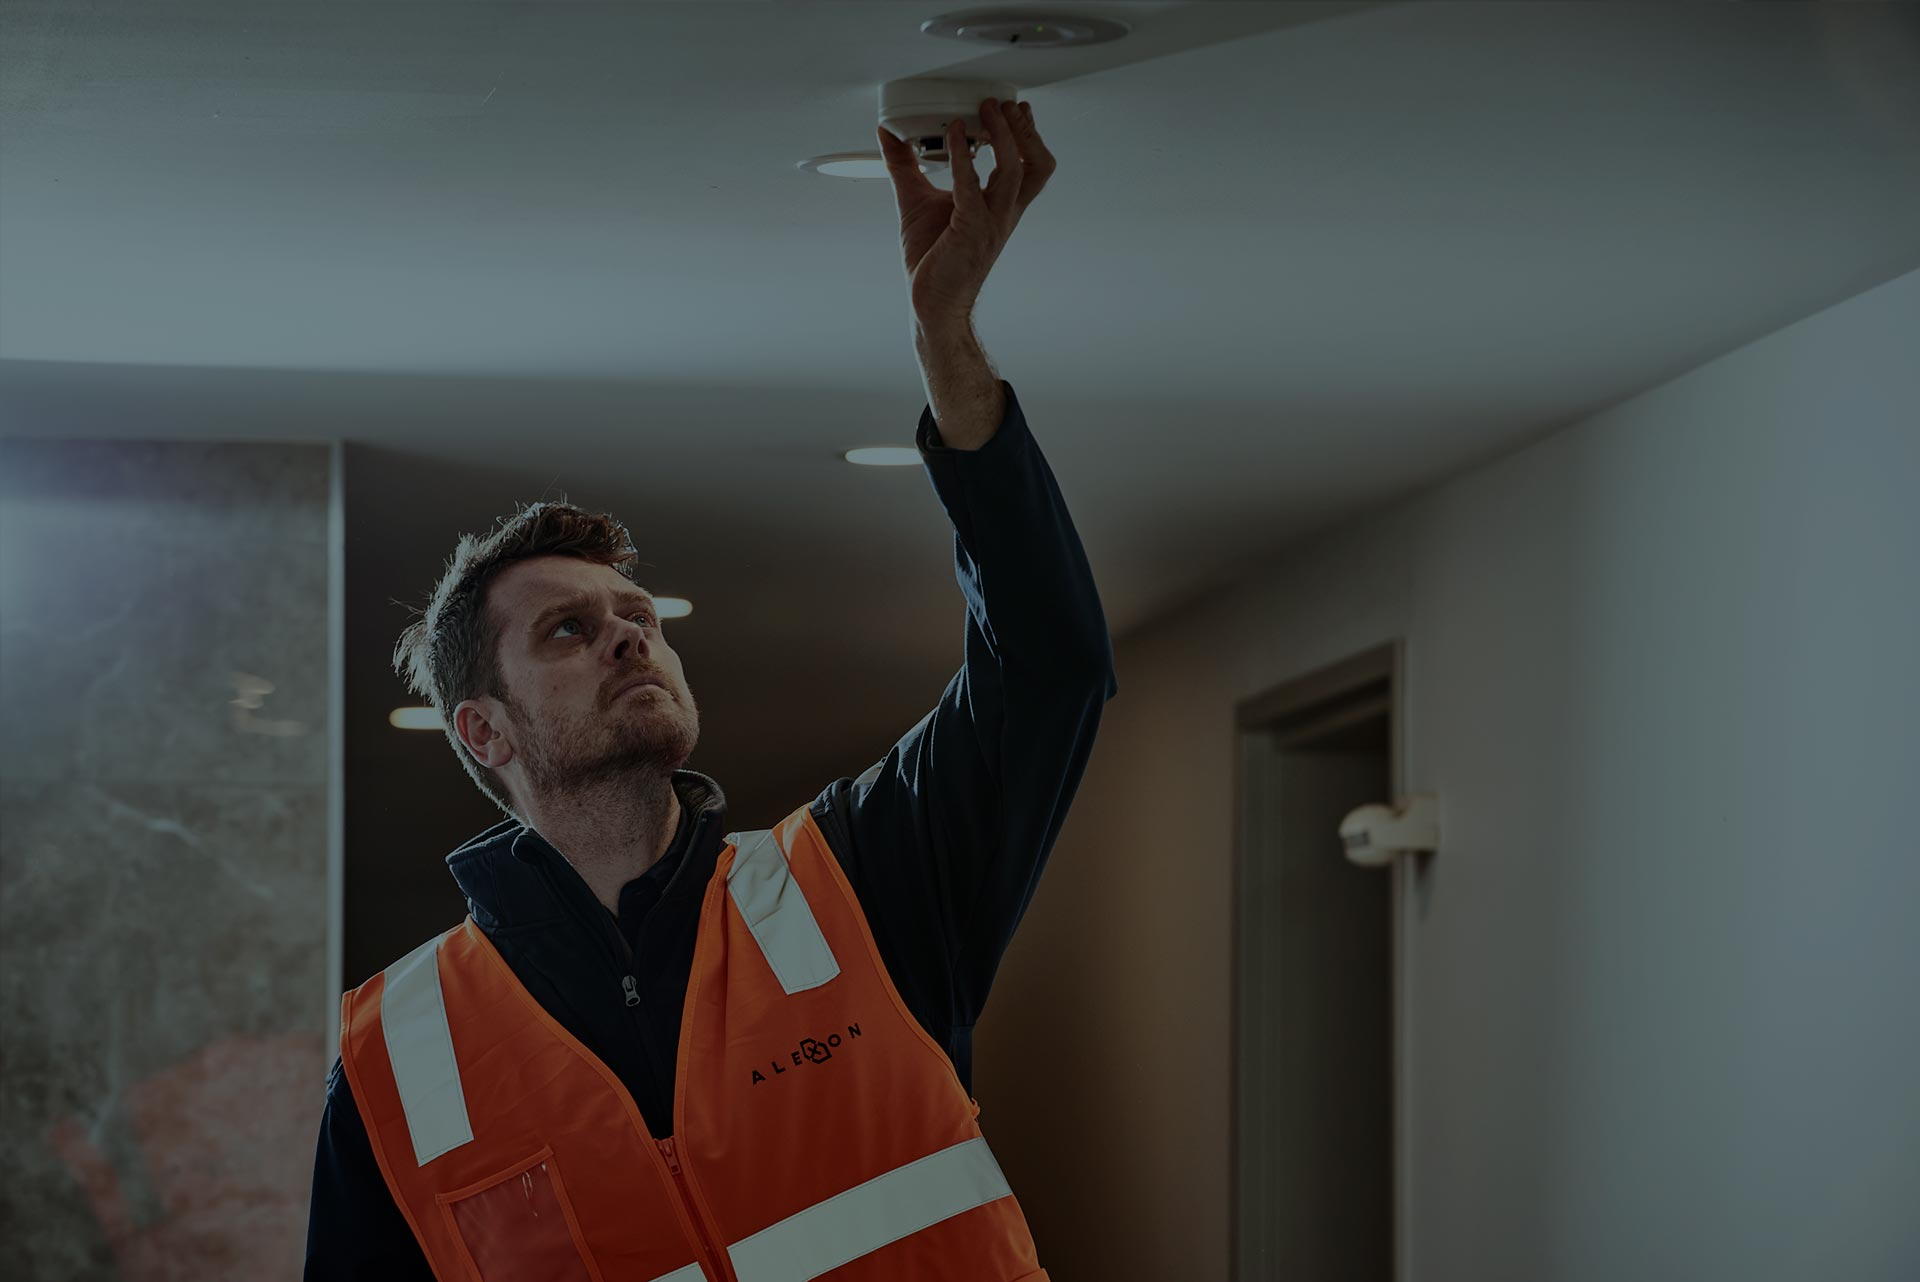 Alexon employee in a safety vest replacing smoke detectors in an apartment complex.